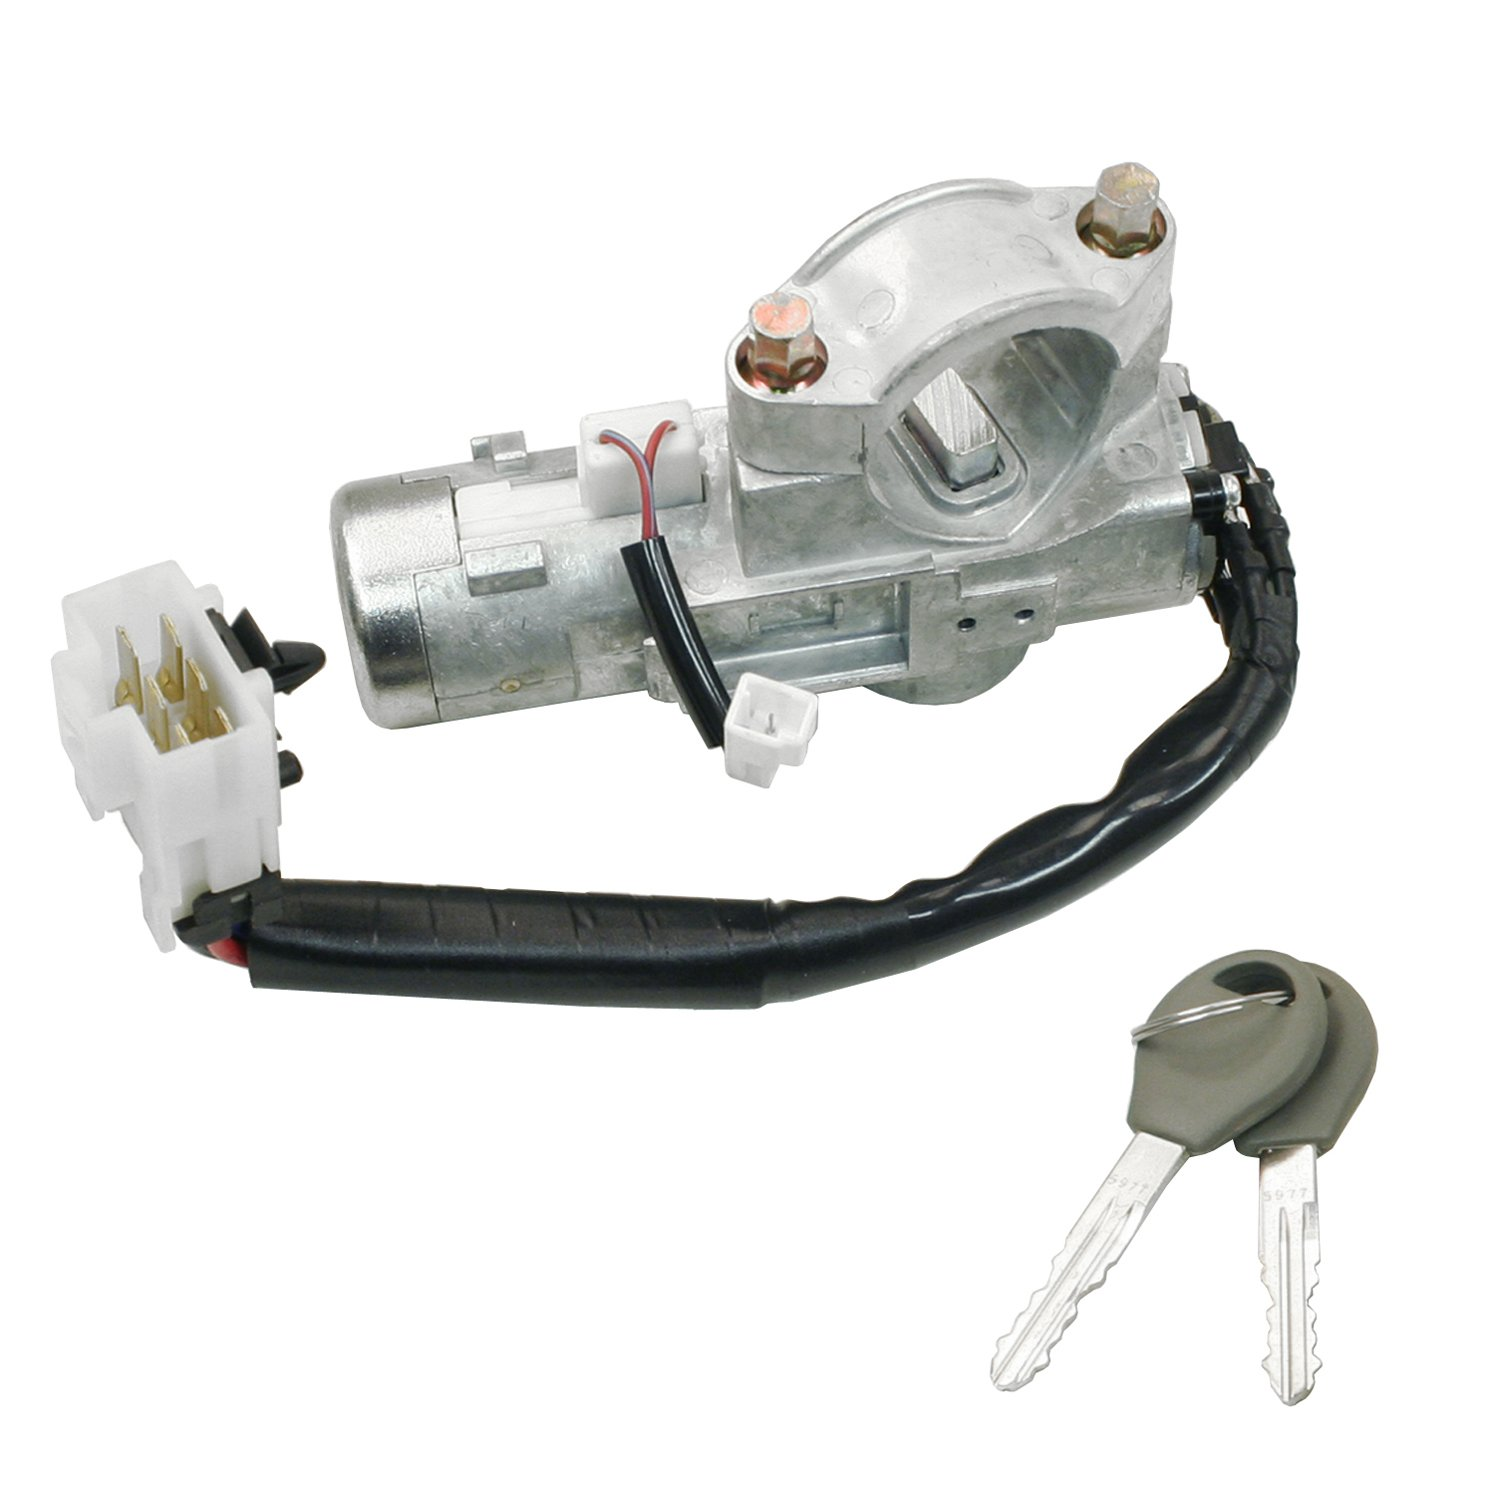 Beck Arnley 201-2064 Ignition Lock and Cylinder Assembly Switch